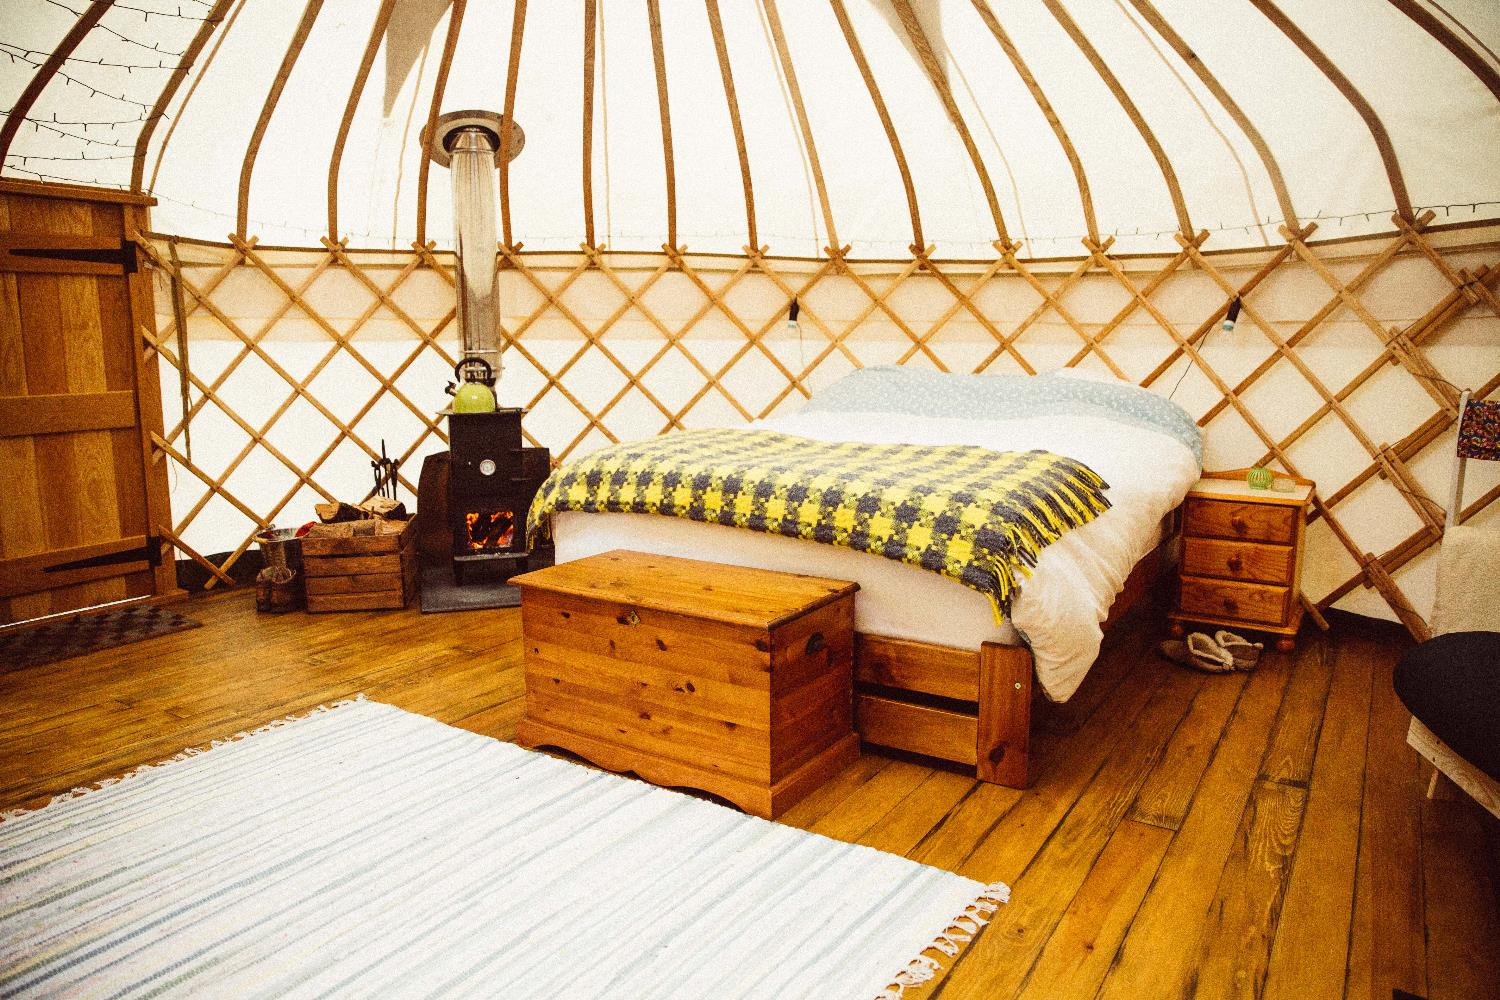 Cosy yurt with comfy king size bed, log fire and snuggly blankets